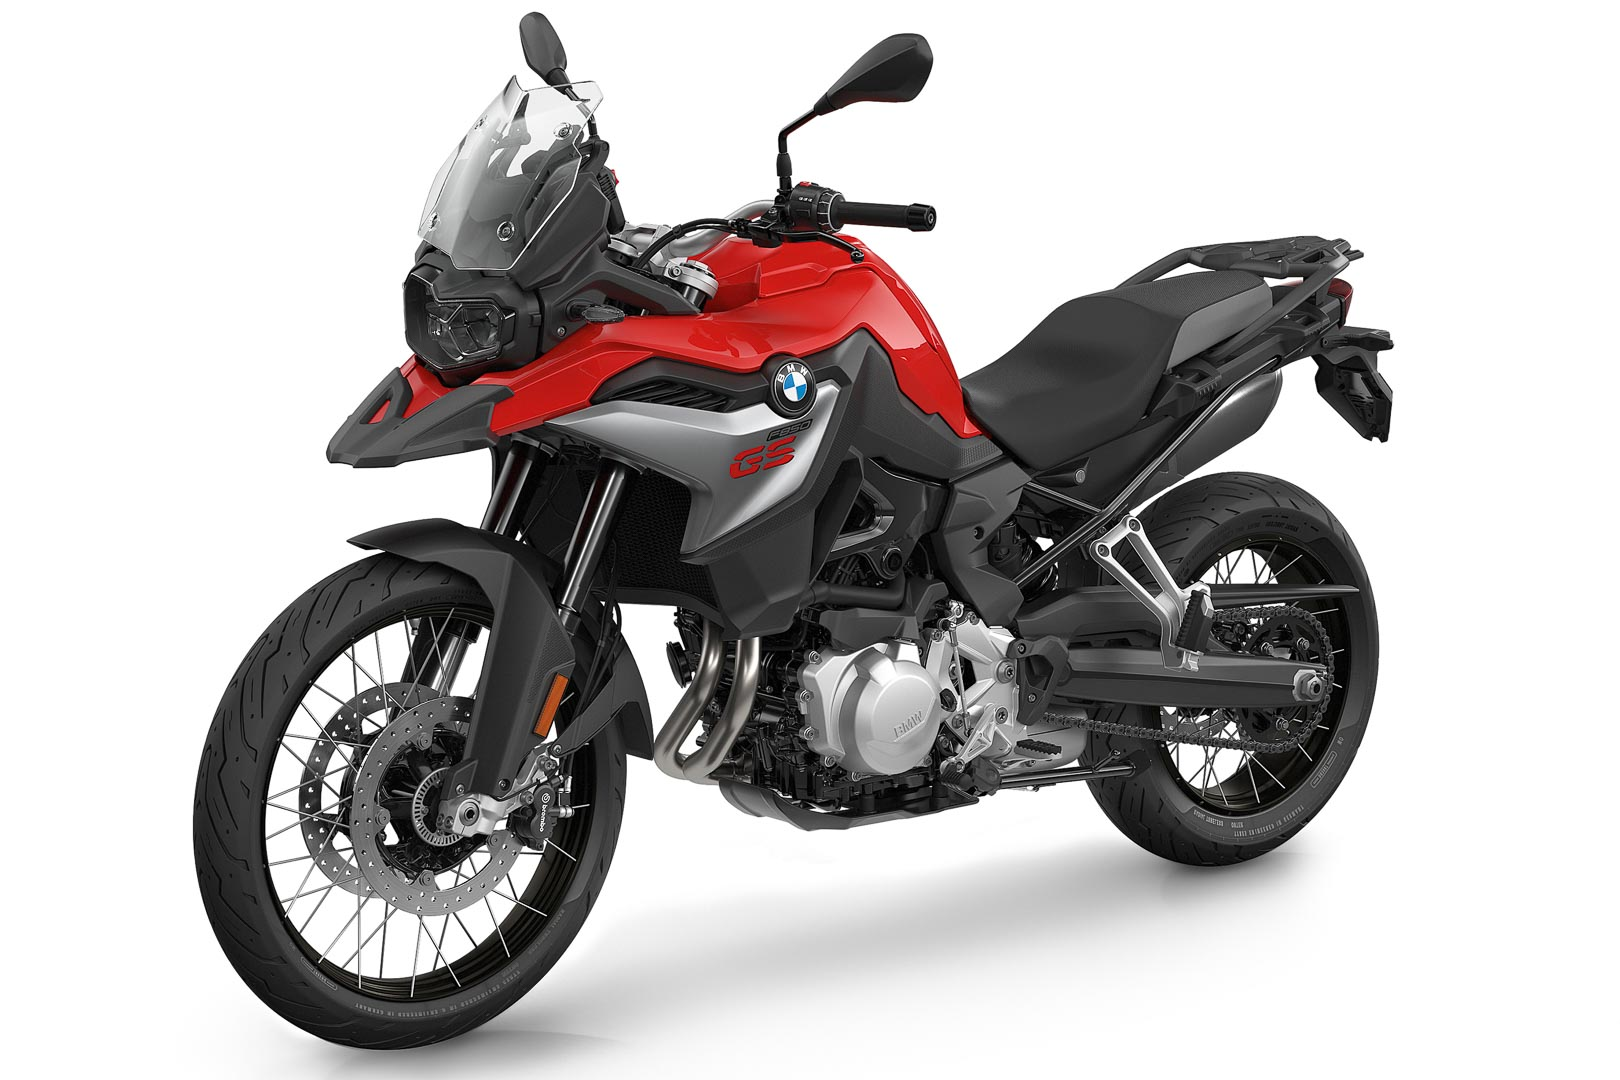 2021 BMW F 850 GS First Look - 750 version